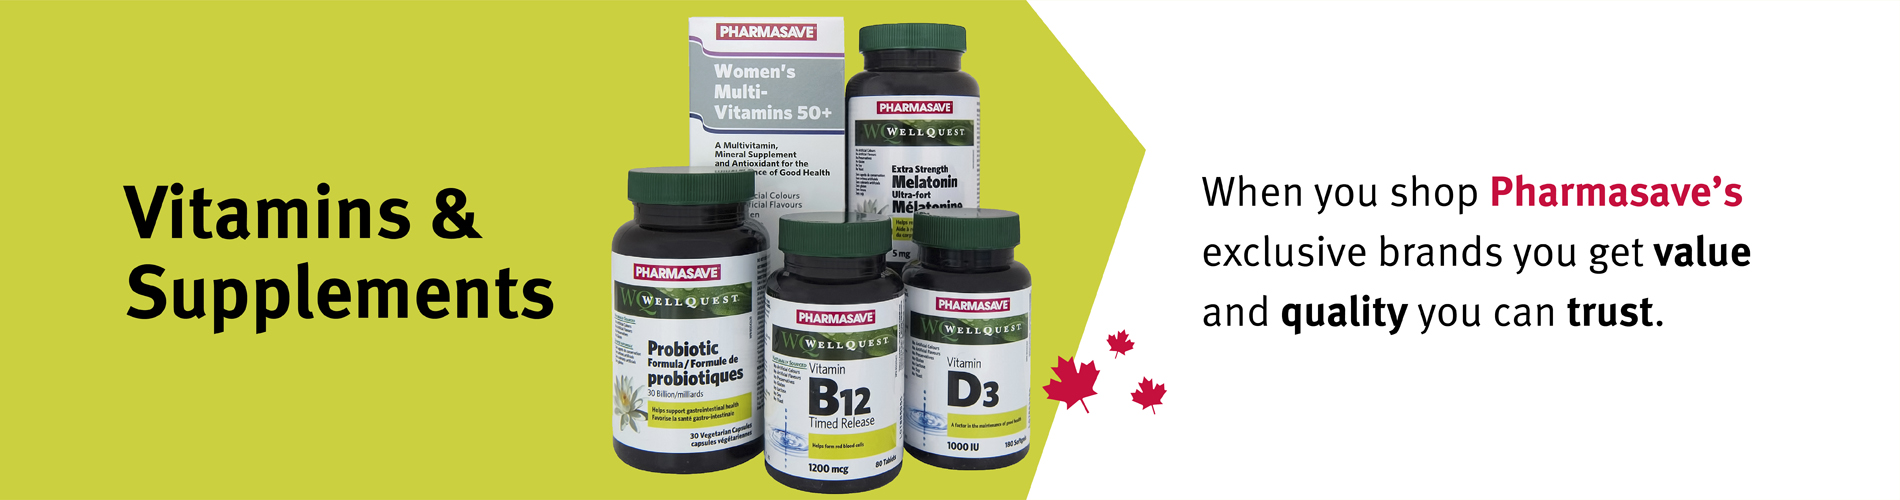 Pharmasave Brand Vitamins and Supplements.